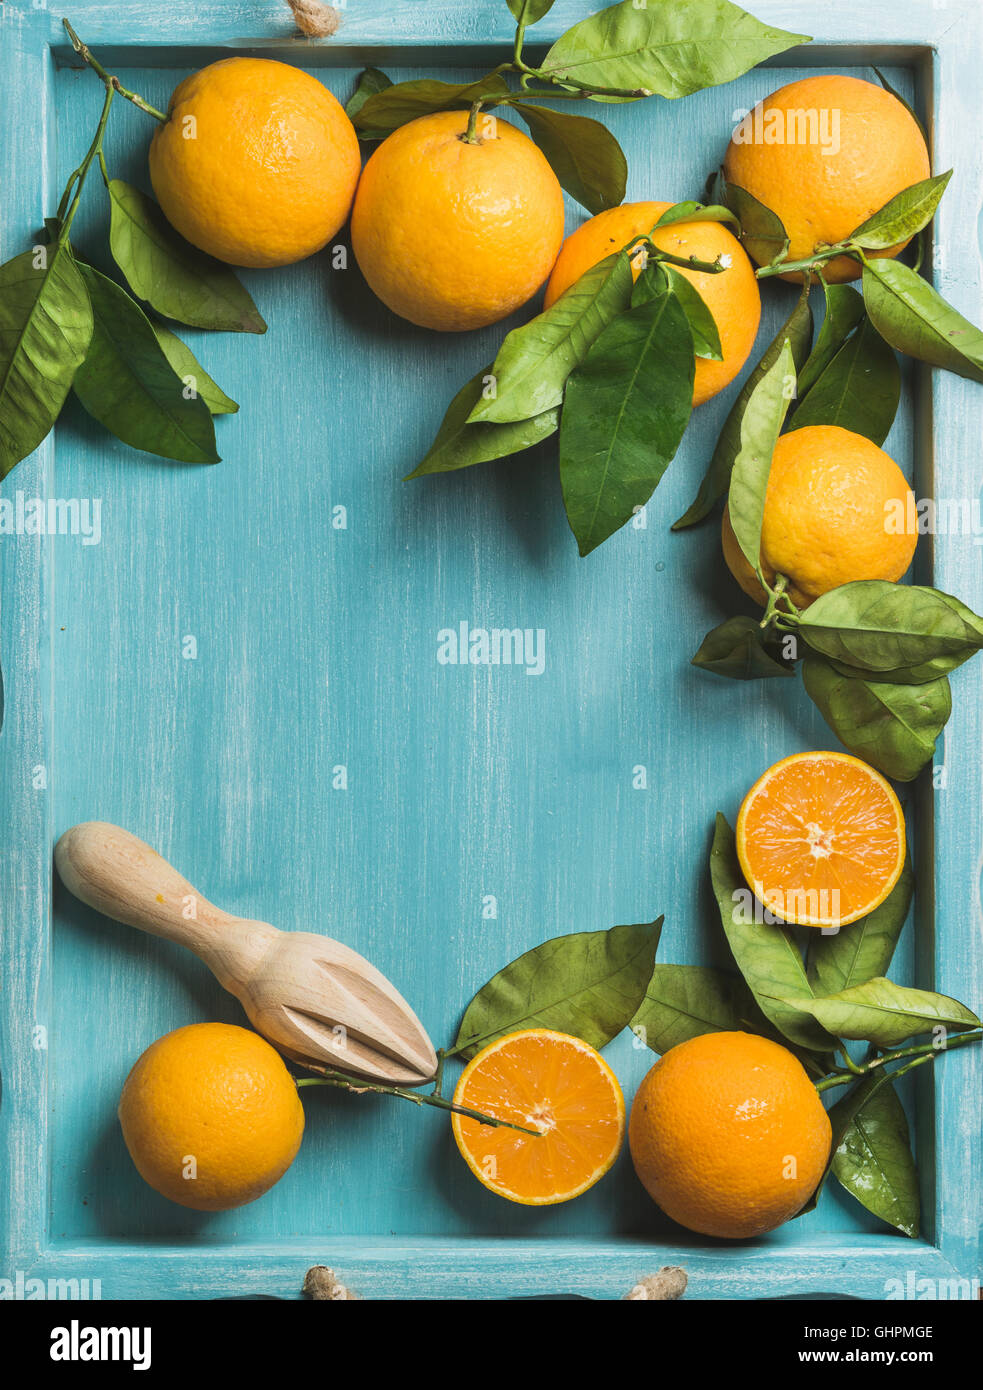 Fresh oranges with leaves on blue painted wooden background, copy space - Stock Image